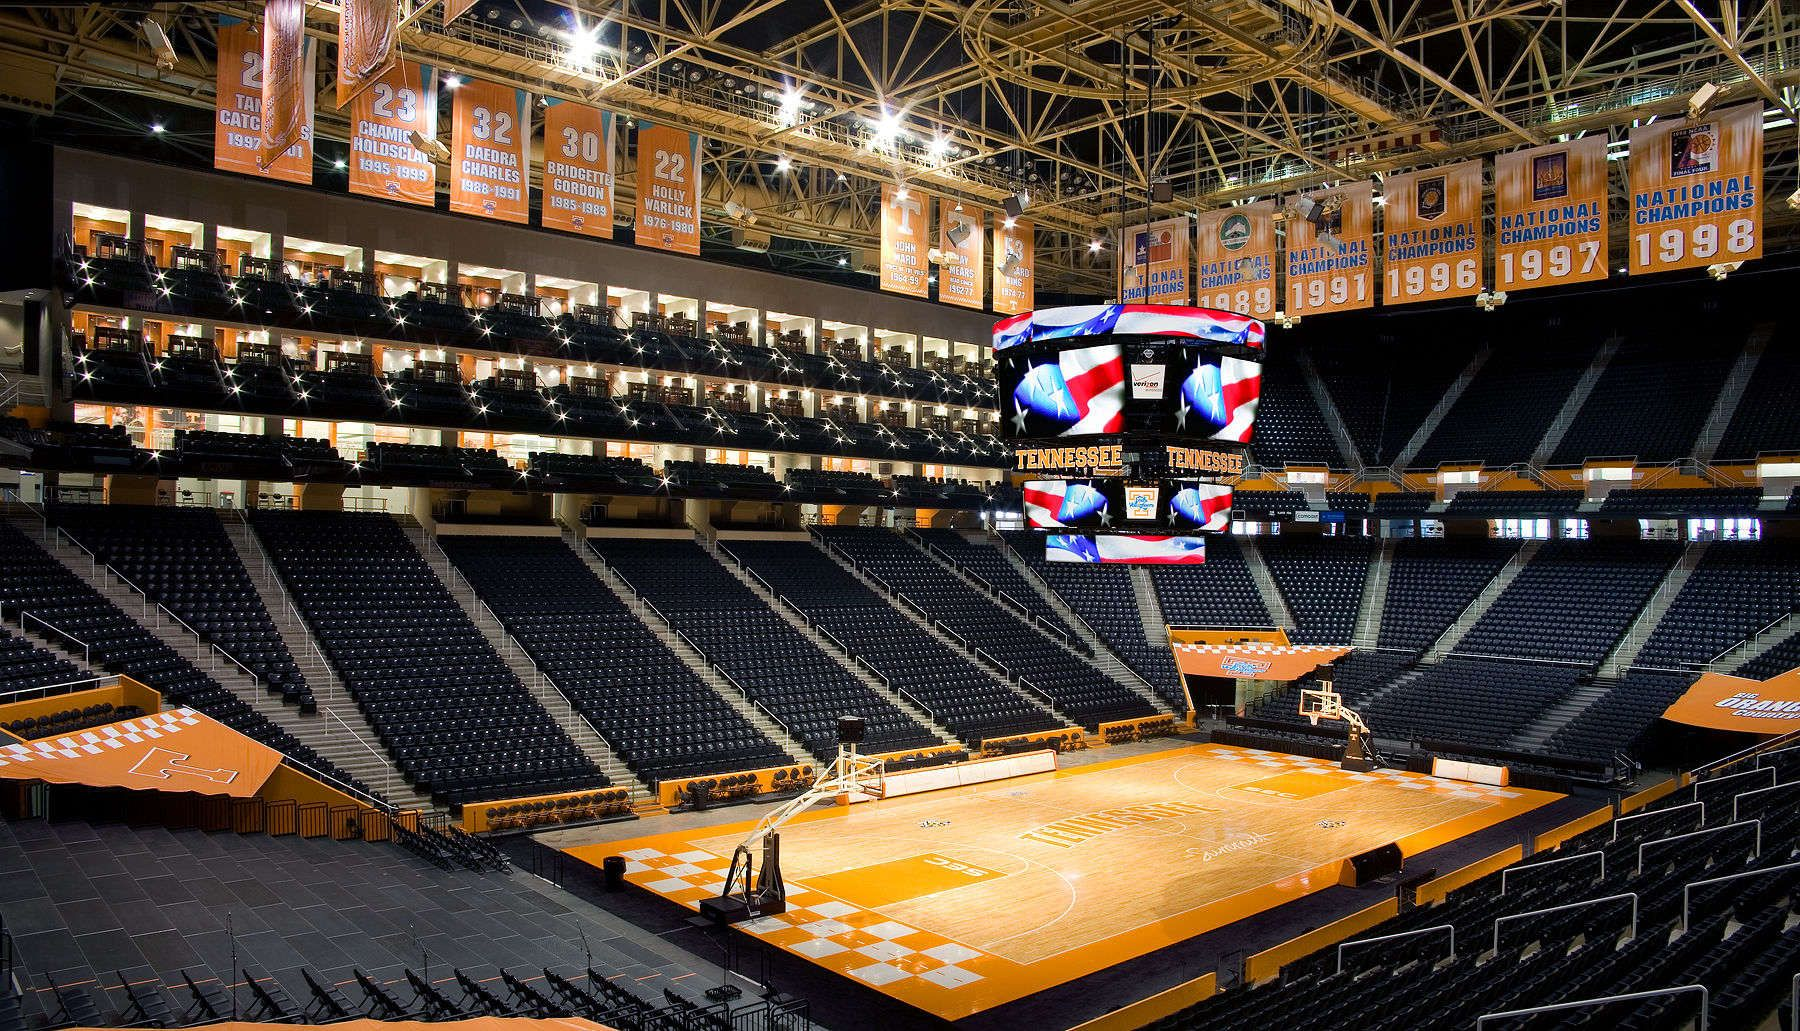 Ranking Sec Basketball Arenas Top To Bottom Secrant Com Stadium Architecture Basketball Arenas